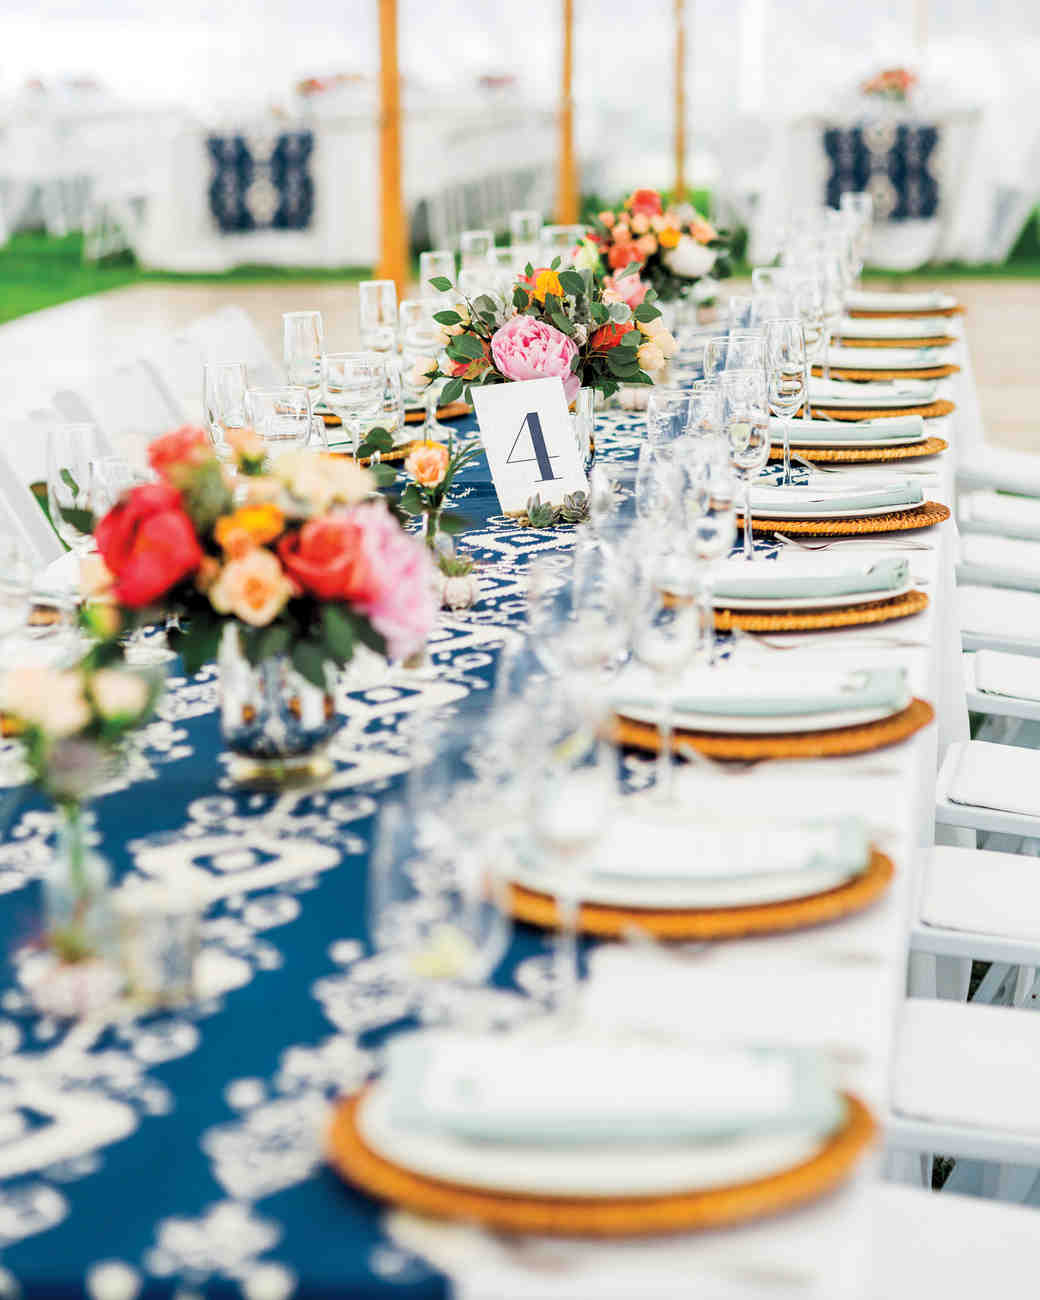 Genial Long Reception Table With Blue Ikat Runner